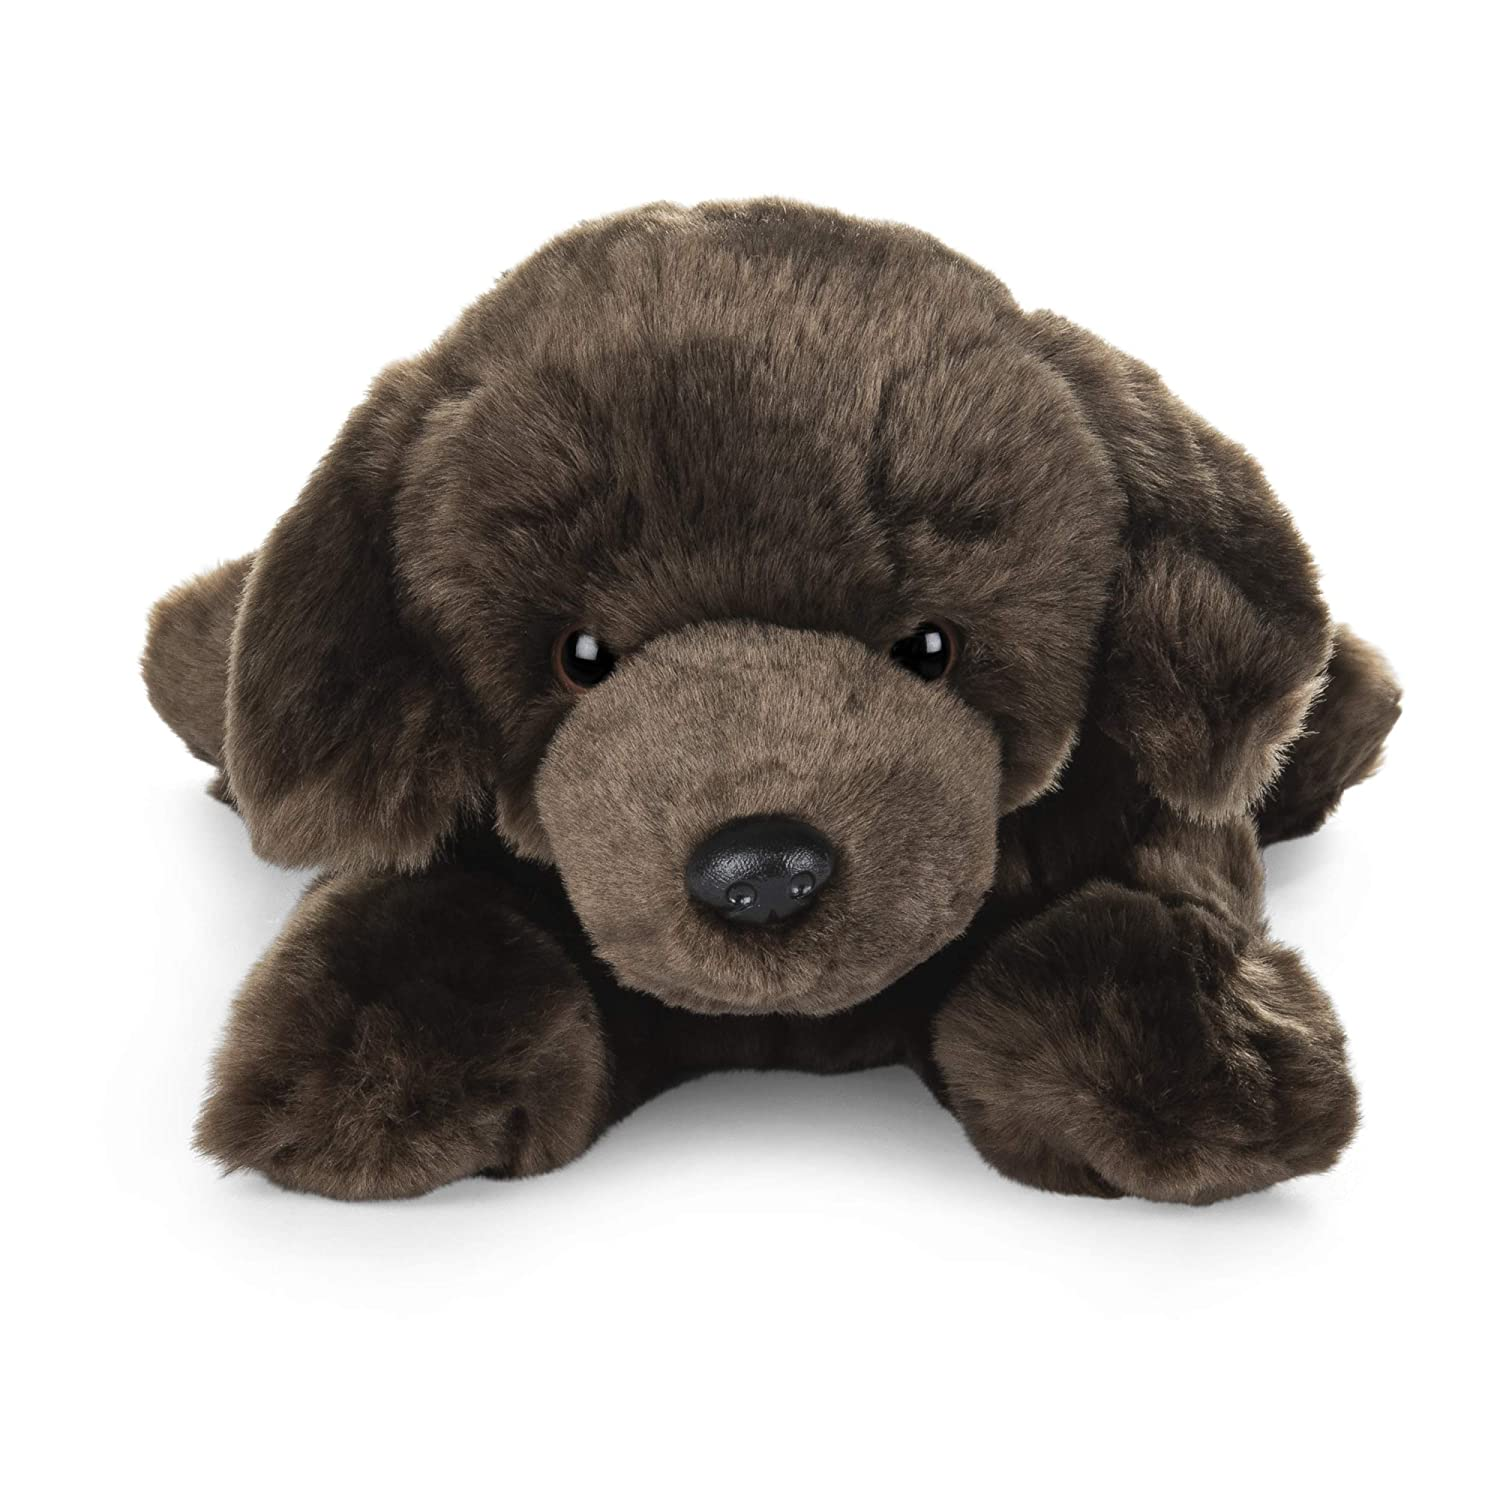 GUND Chocolate Labrador Dog Stuffed Animal Medium 14 inch Plush Toy